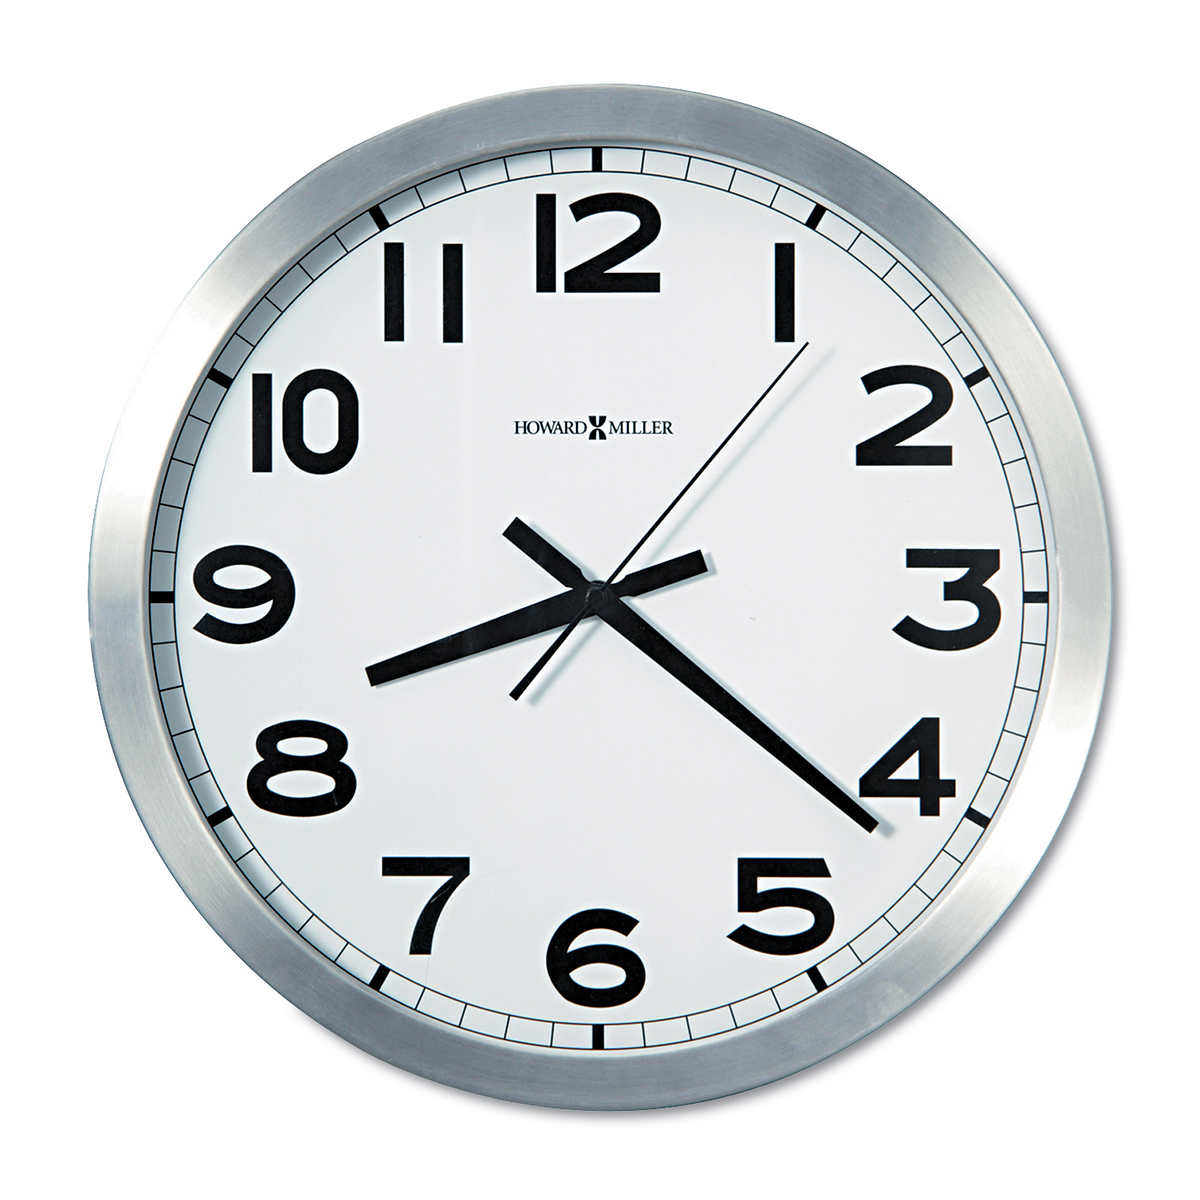 Howard miller 15 34 round wall clock click to zoom amipublicfo Choice Image